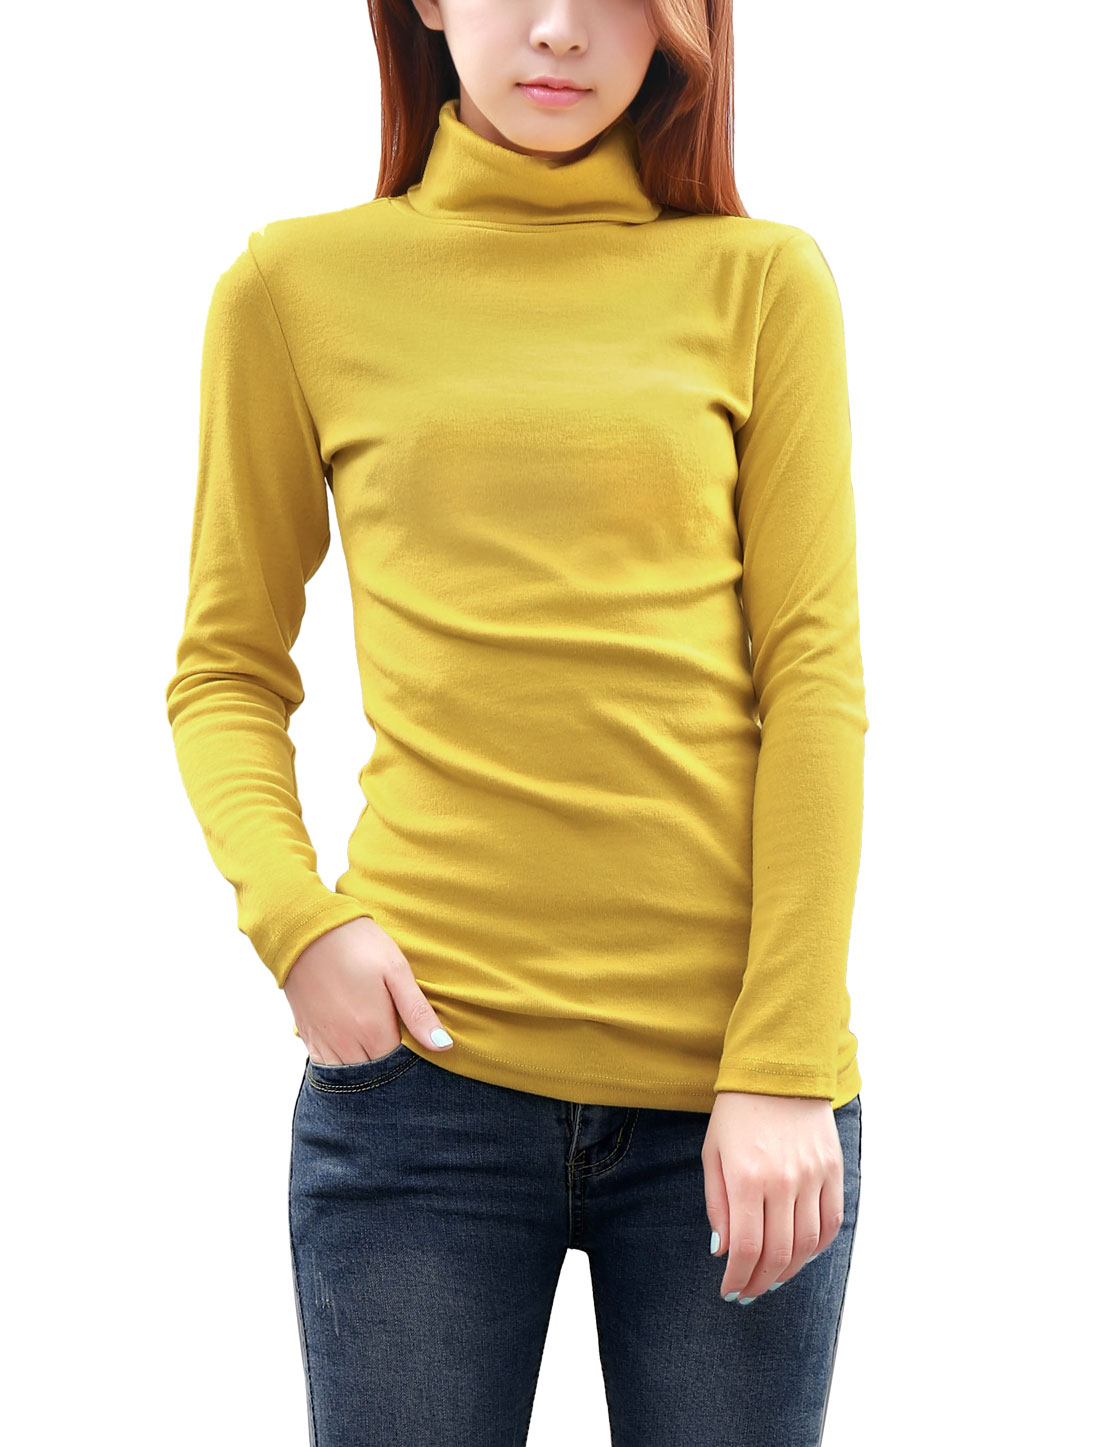 Women Cozy Fit Pullover Design Turtle Neck Autumn Knit Top Yellow XL